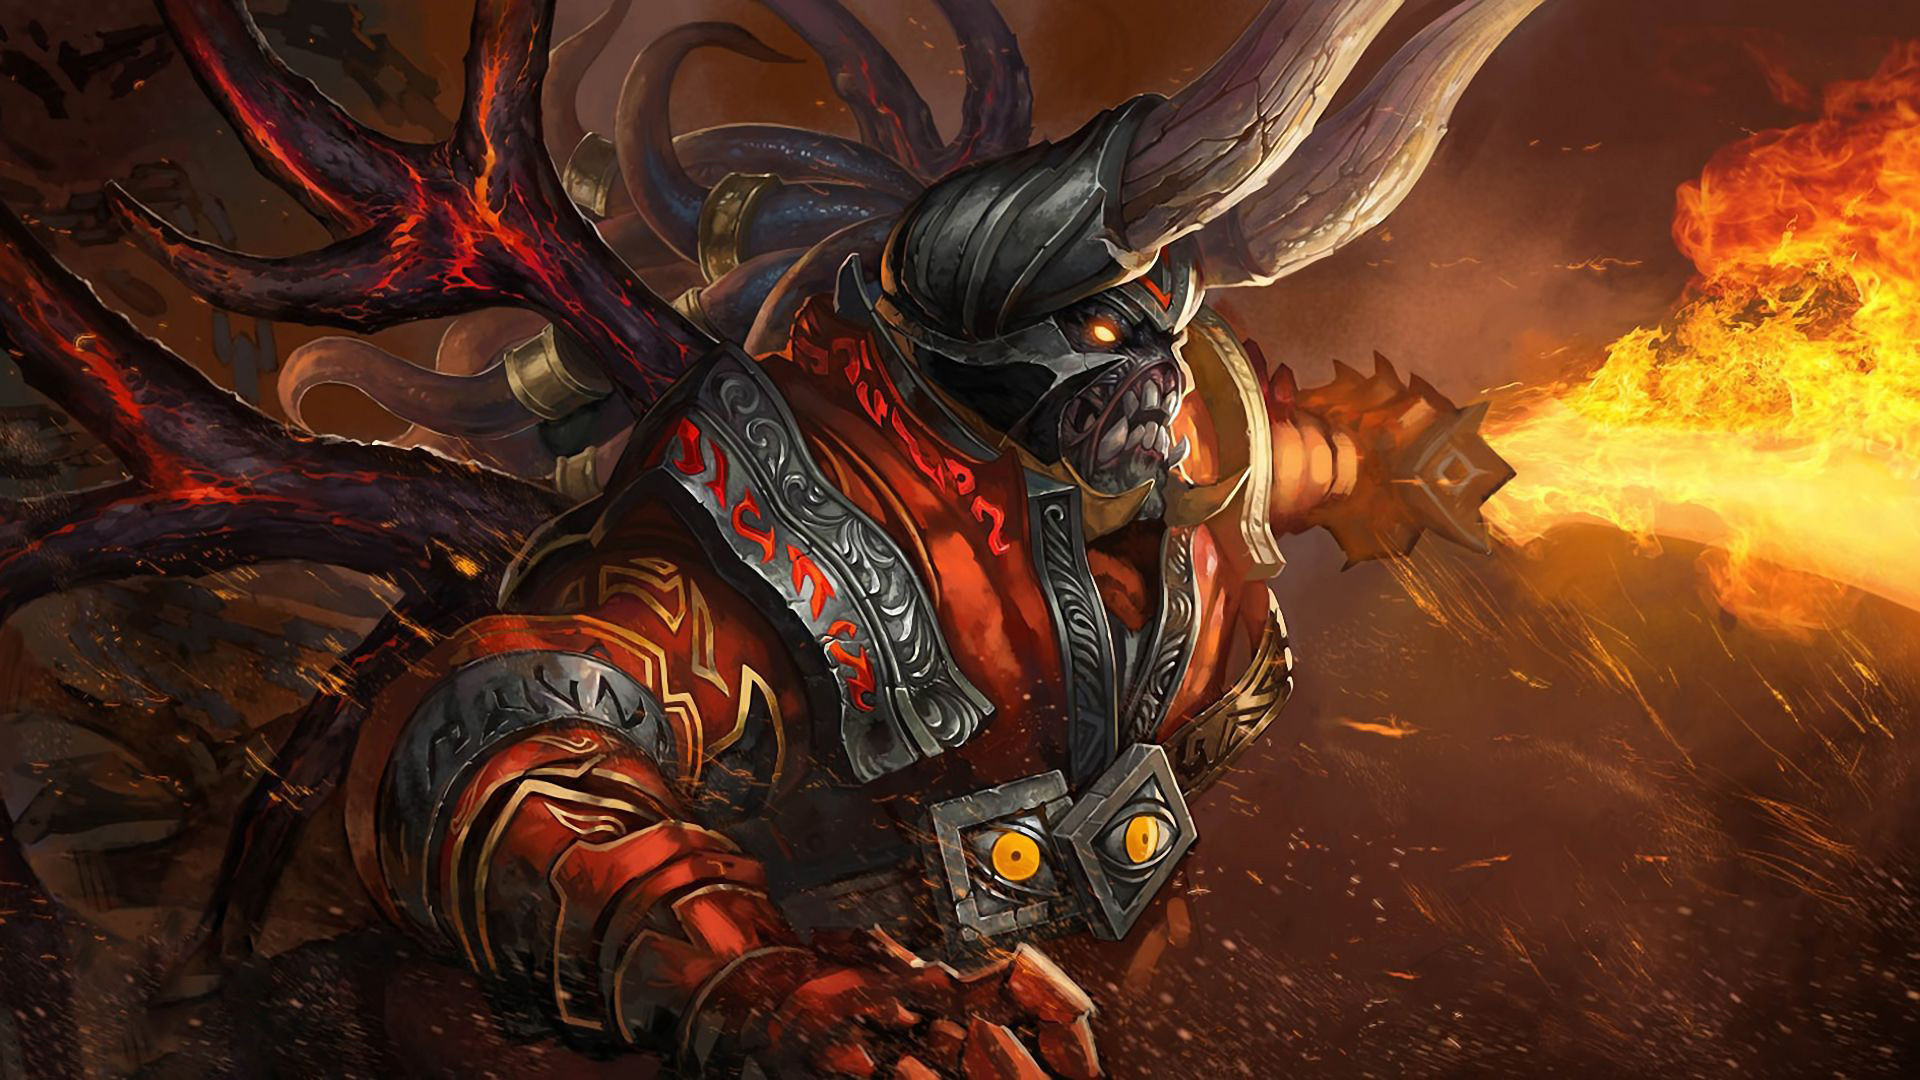 Dota 2 Pudge Images Is Cool Wallpapers   Ilustraciones   Pinterest   Free  credit report and Wallpaper